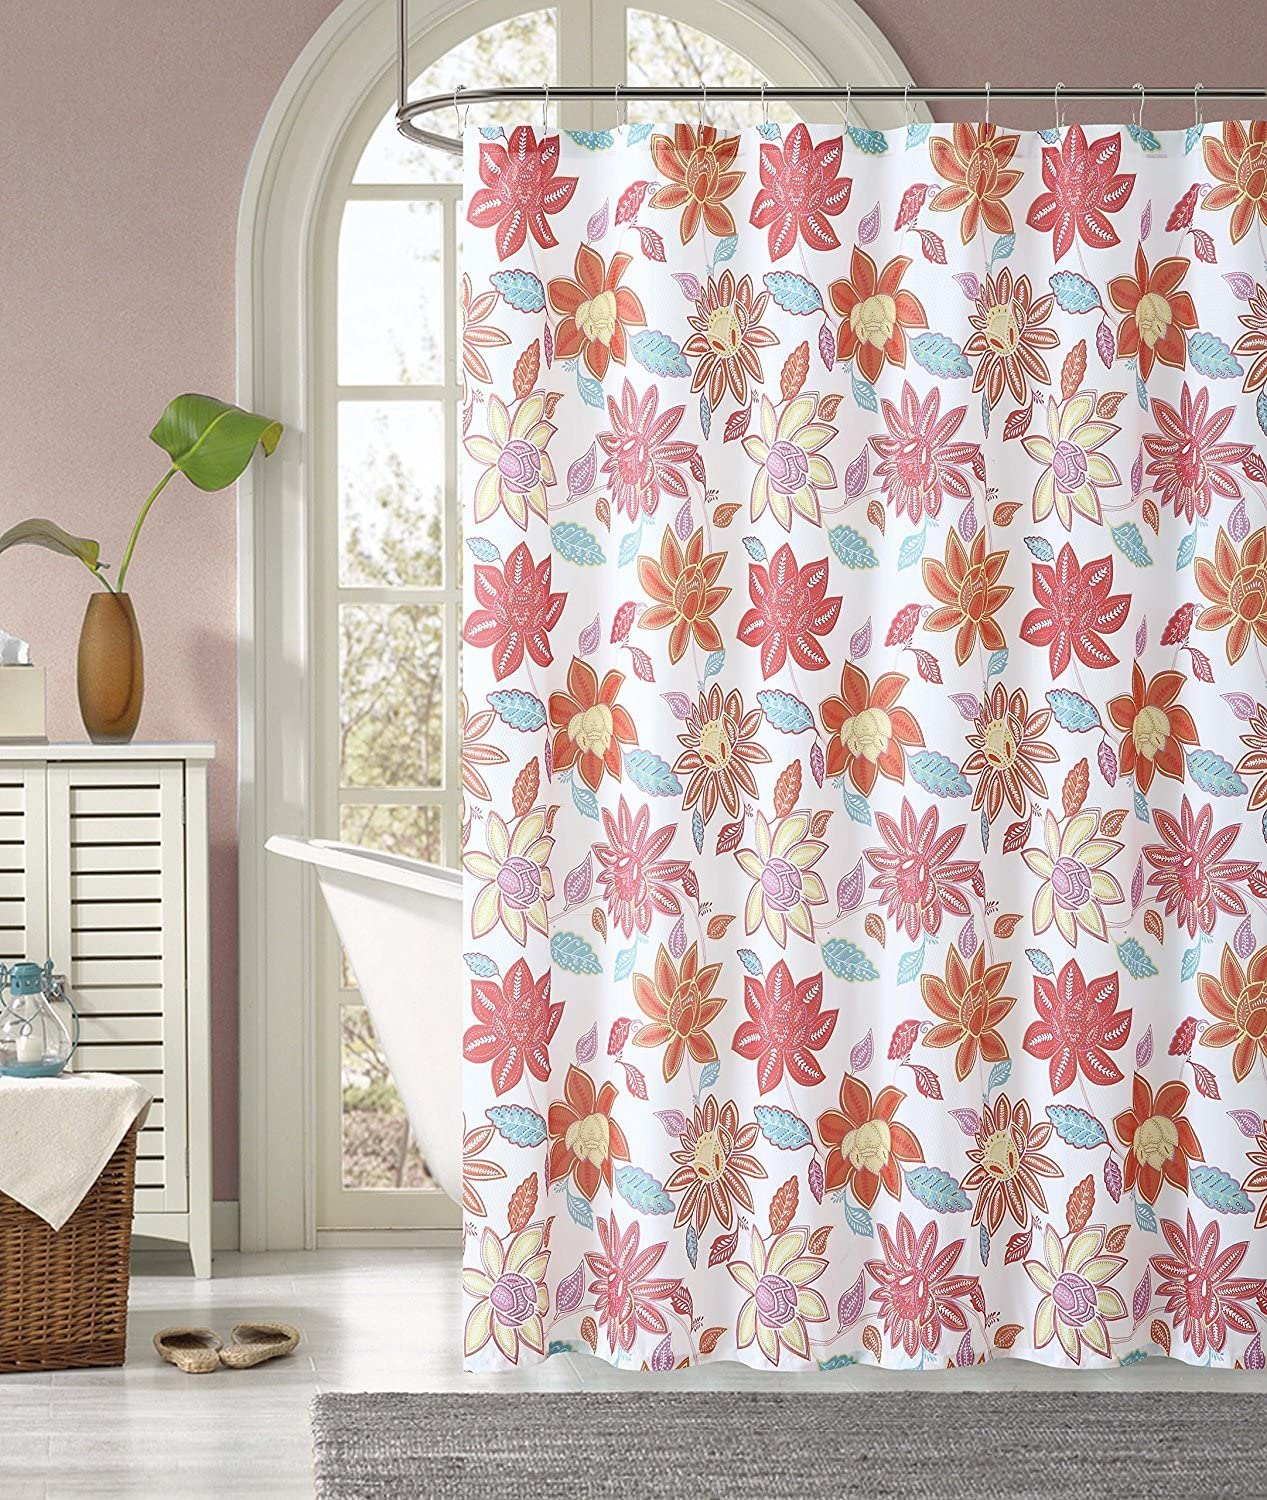 Home Goods Fabric Shower Curtain 72 X 72 INCH Sardinia Red